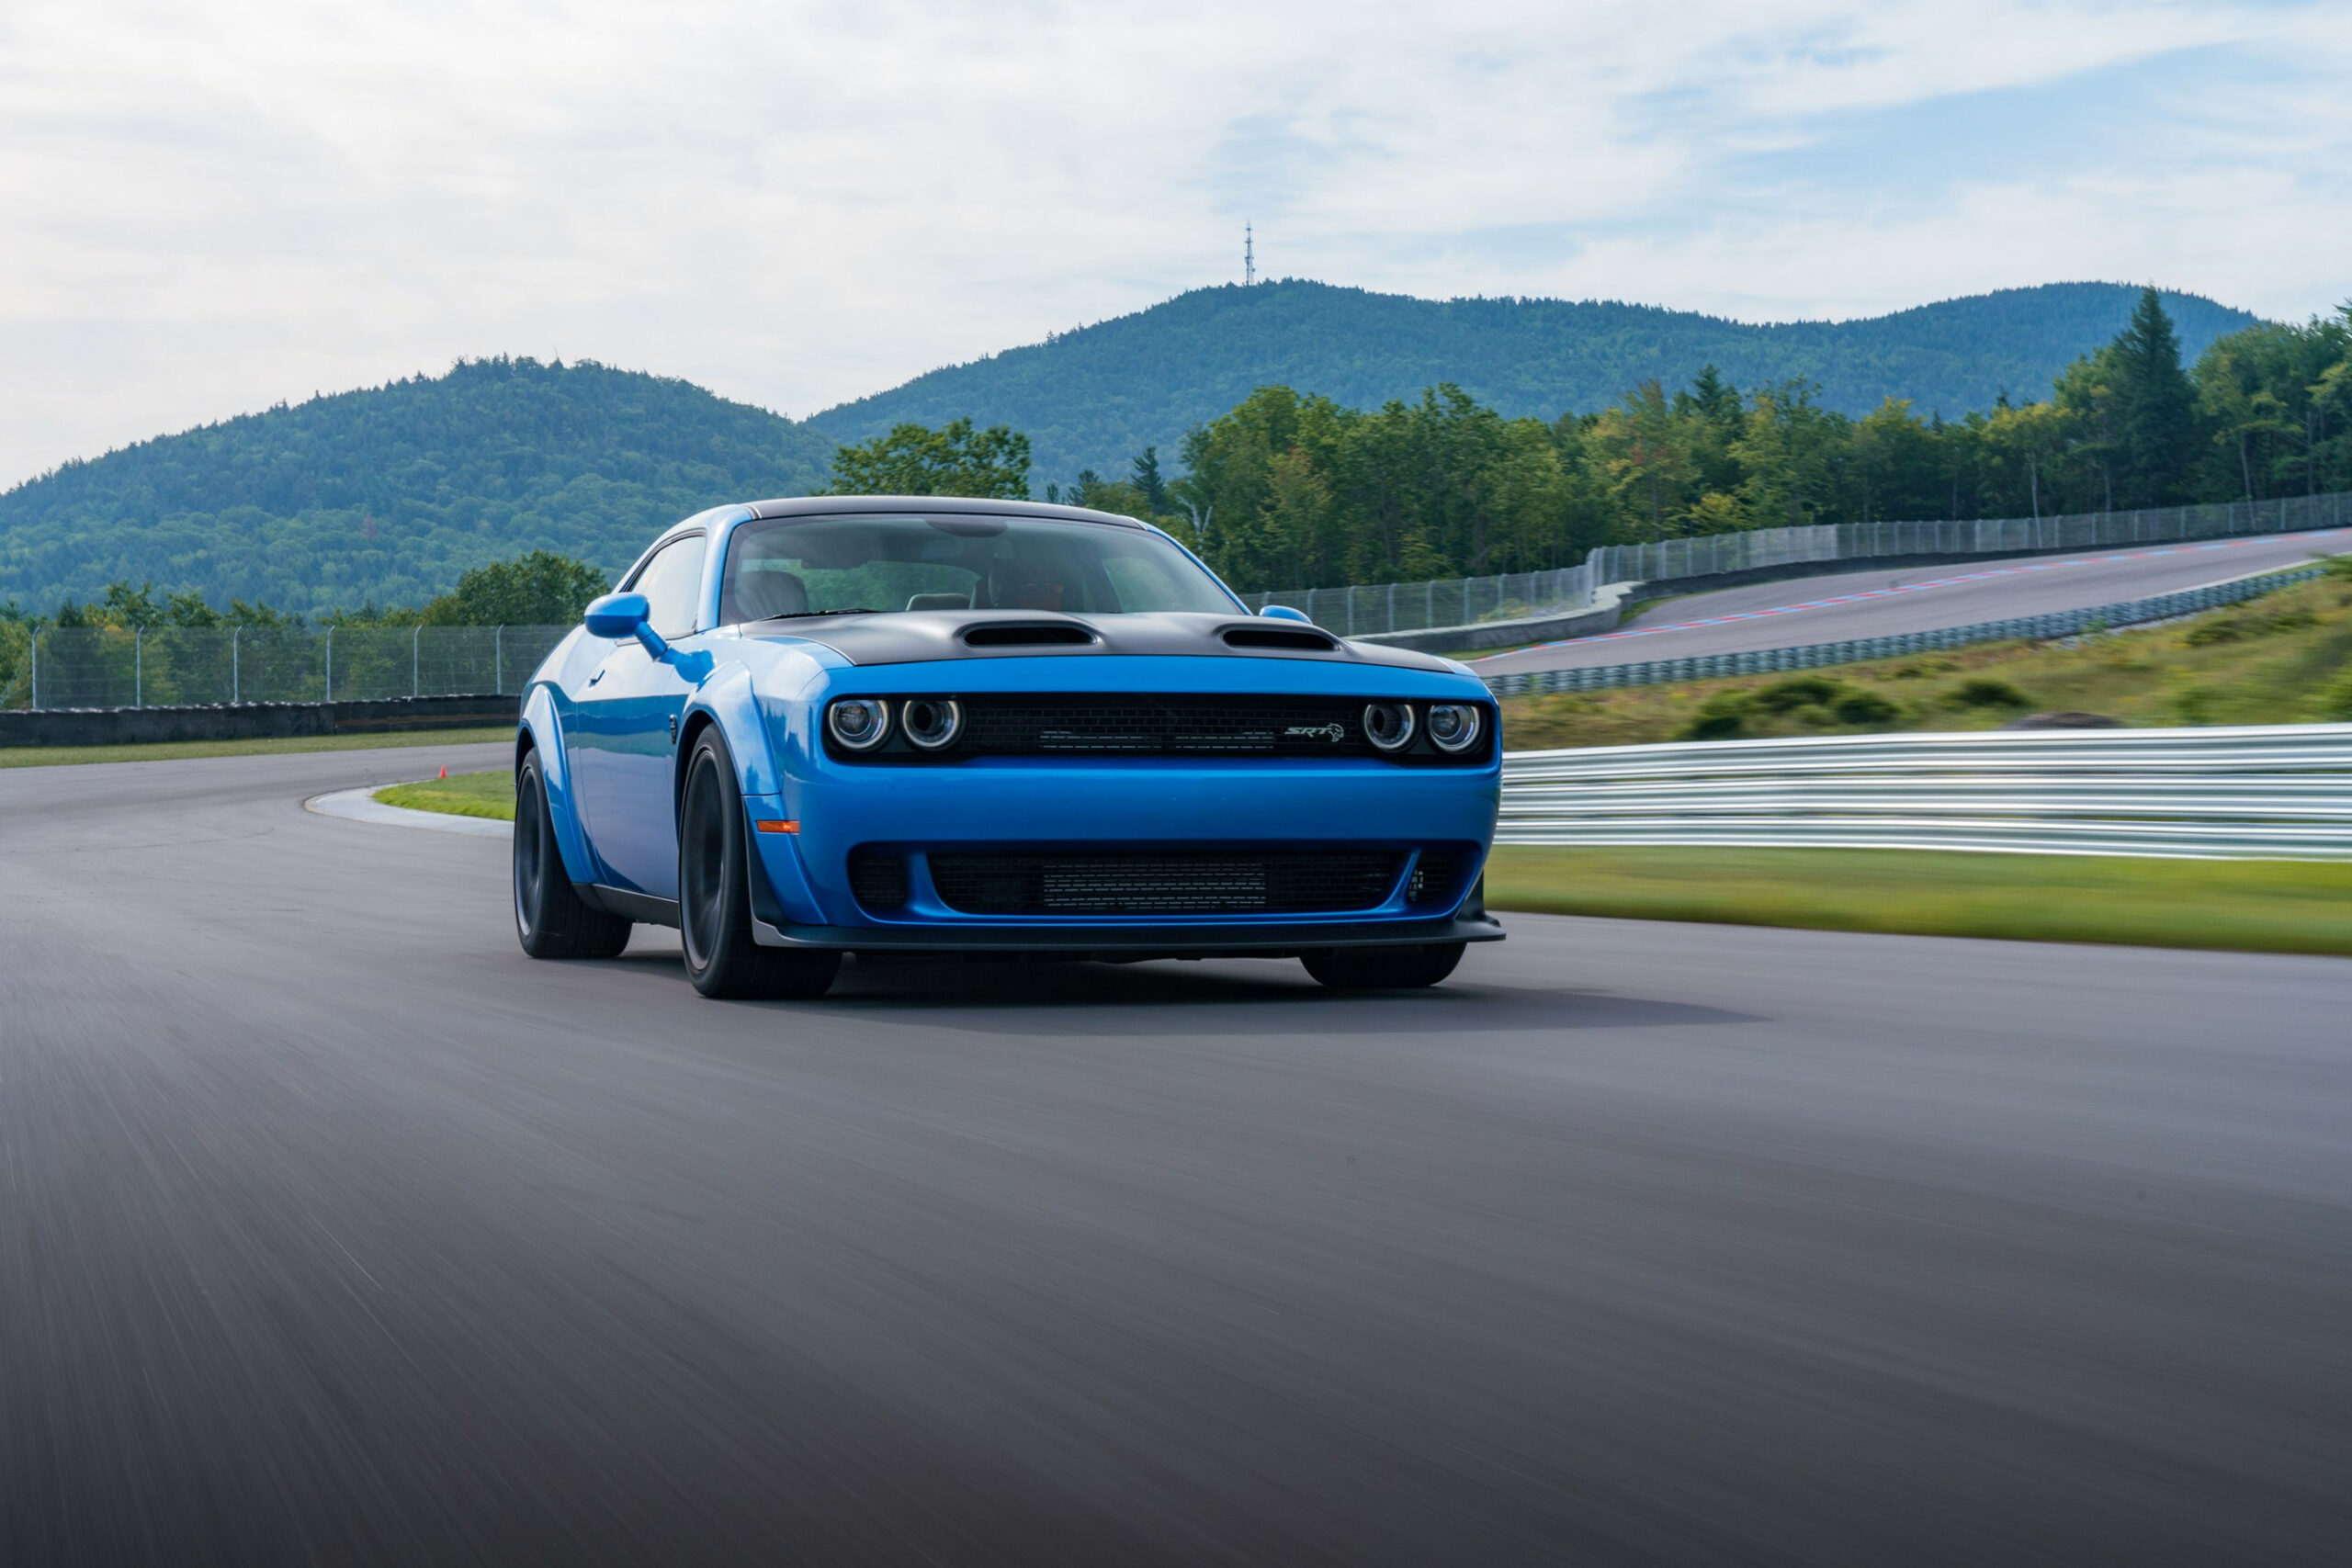 11 Dodge Challenger SRT Hellcat Review, Pricing, and Specs - 2020 dodge hellcat redeye price